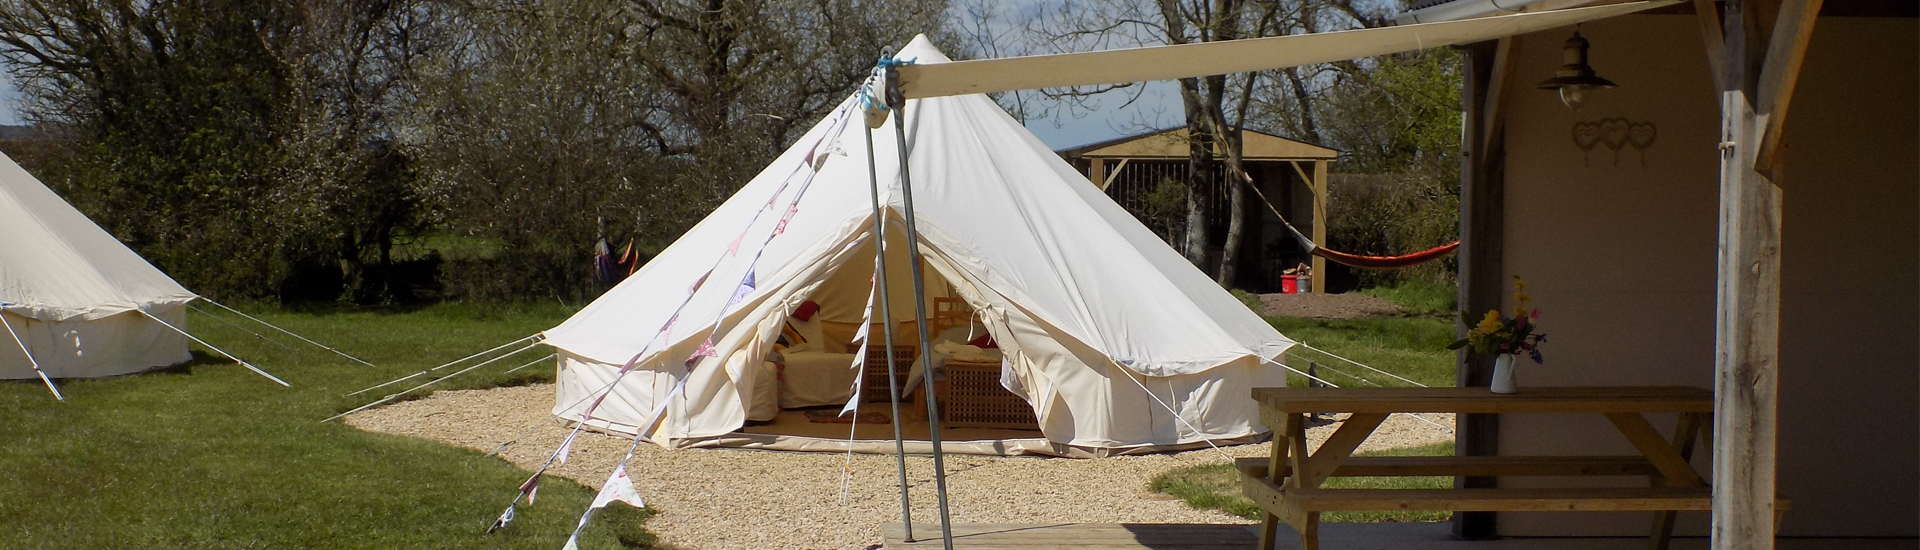 belltent & Bell Tents | The Old Summer Dairy